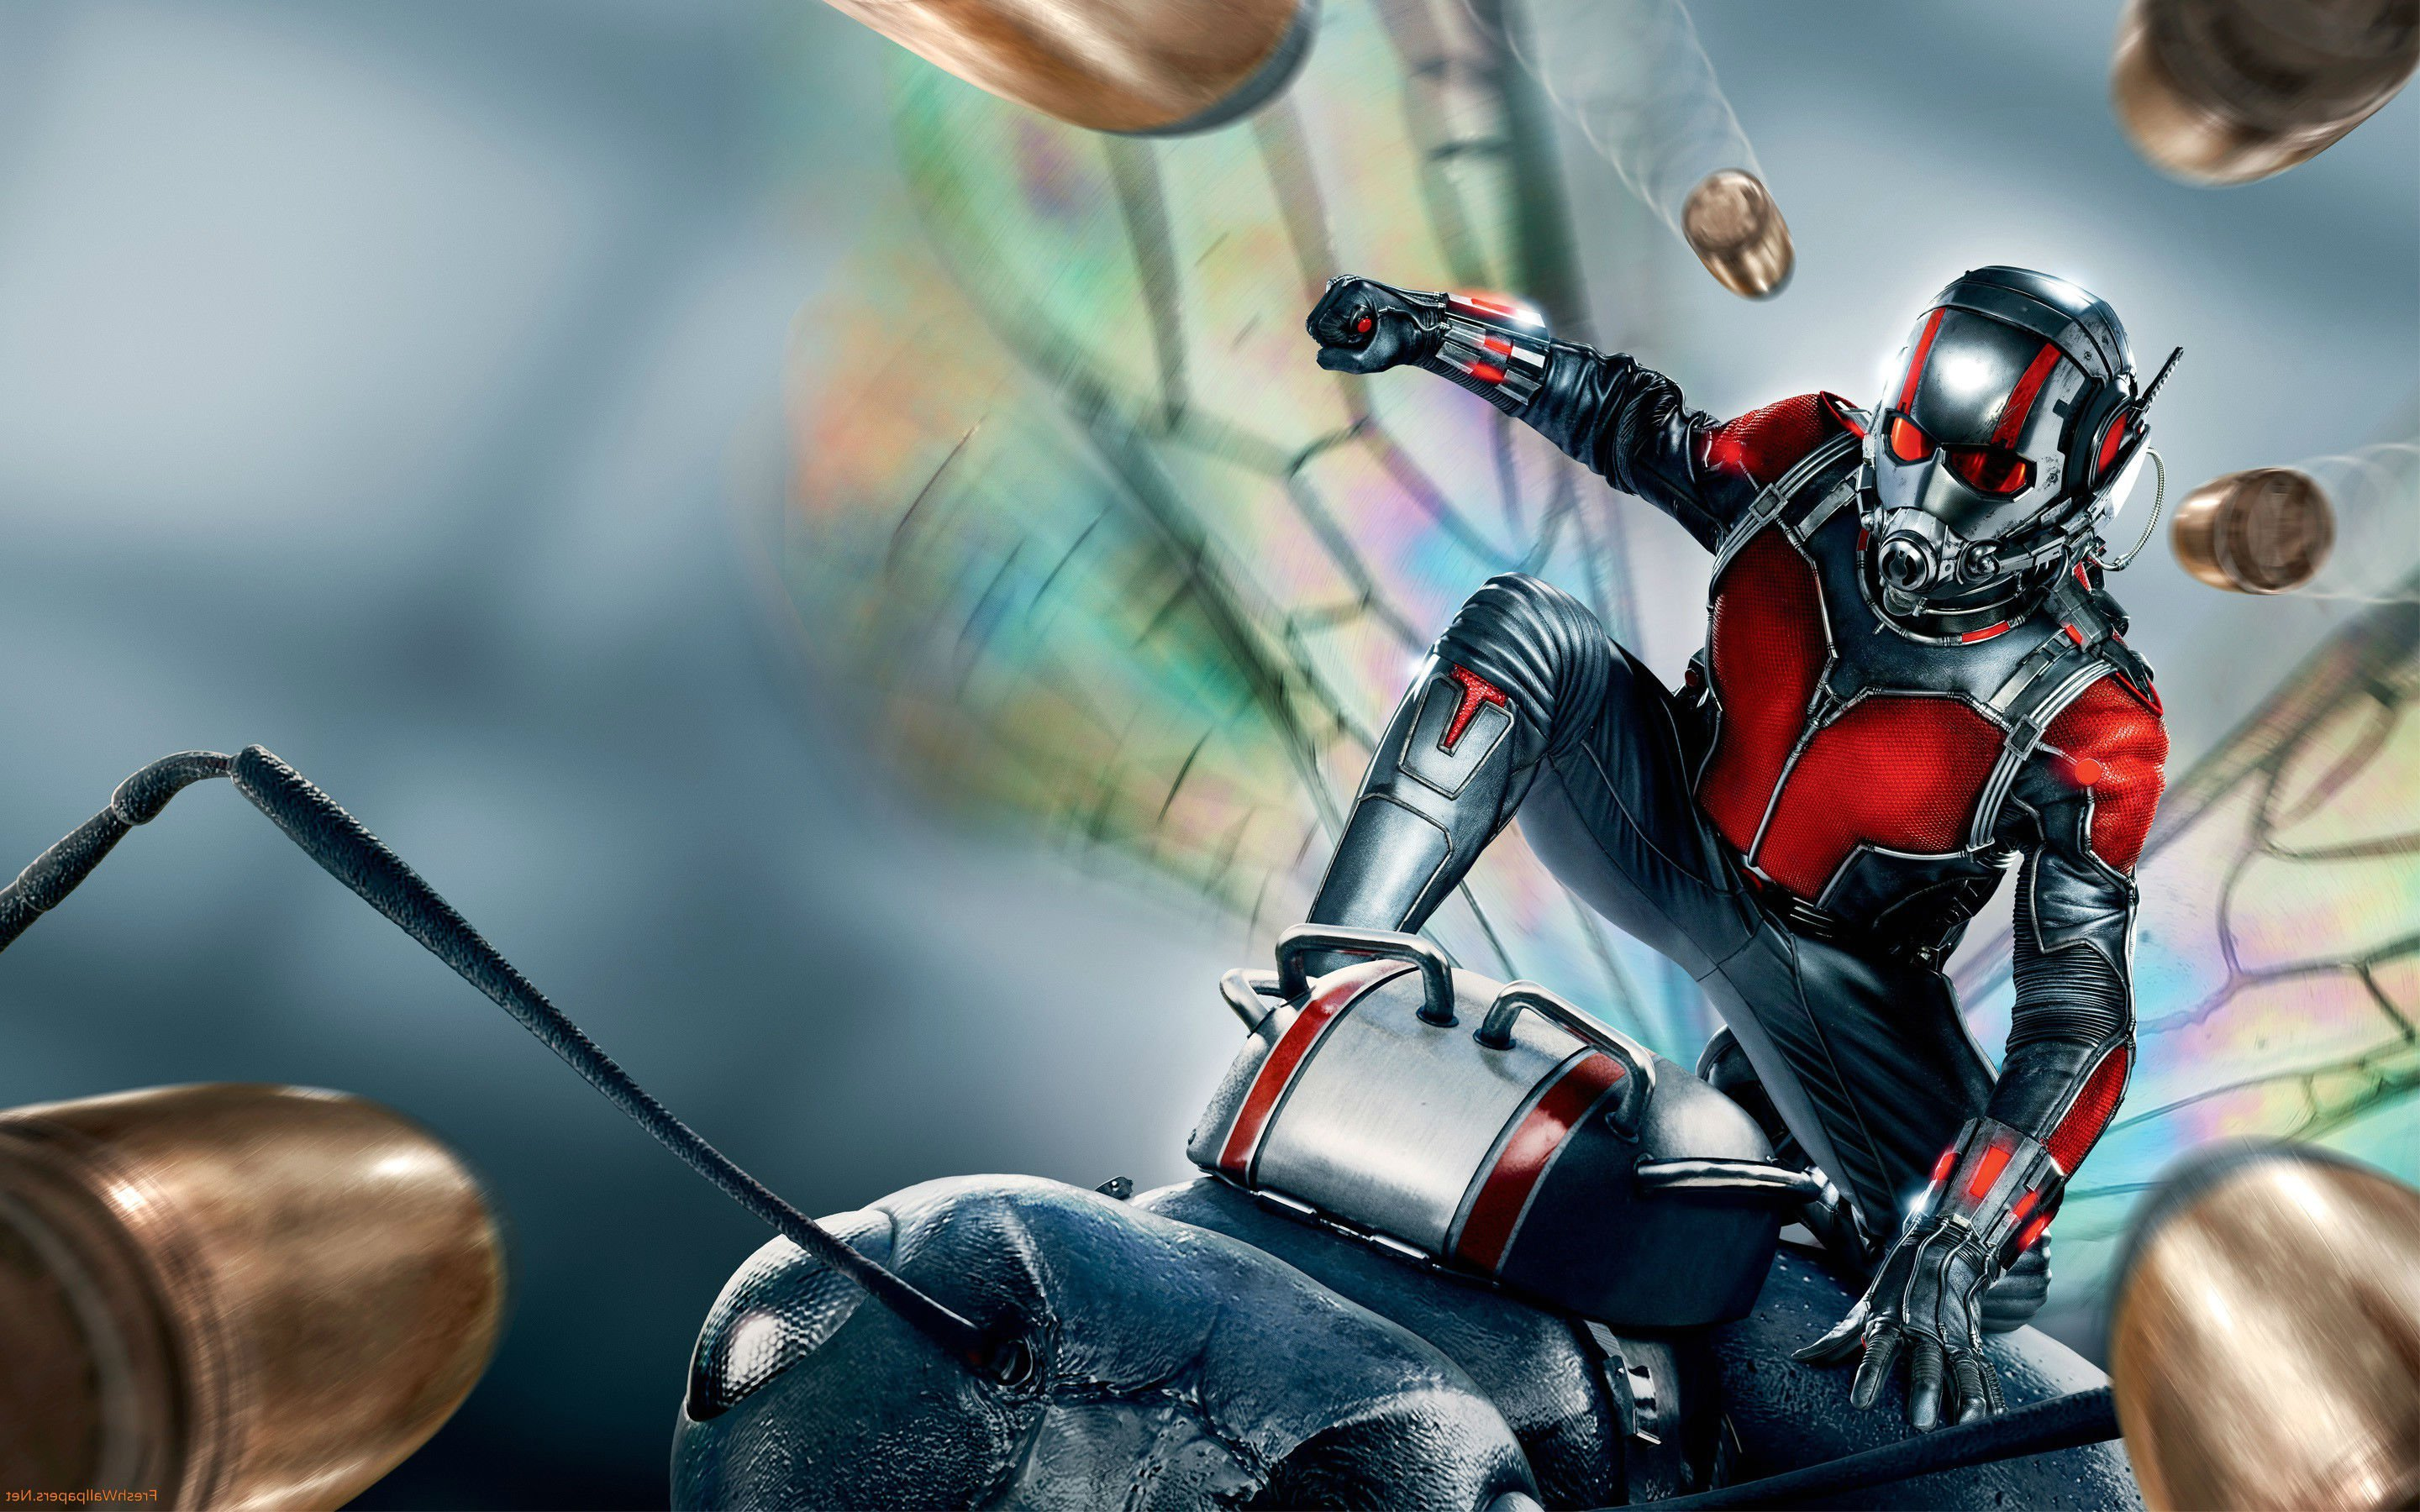 marvel comics disney hero 1antman warrior ant man wallpaper background 2880x1800